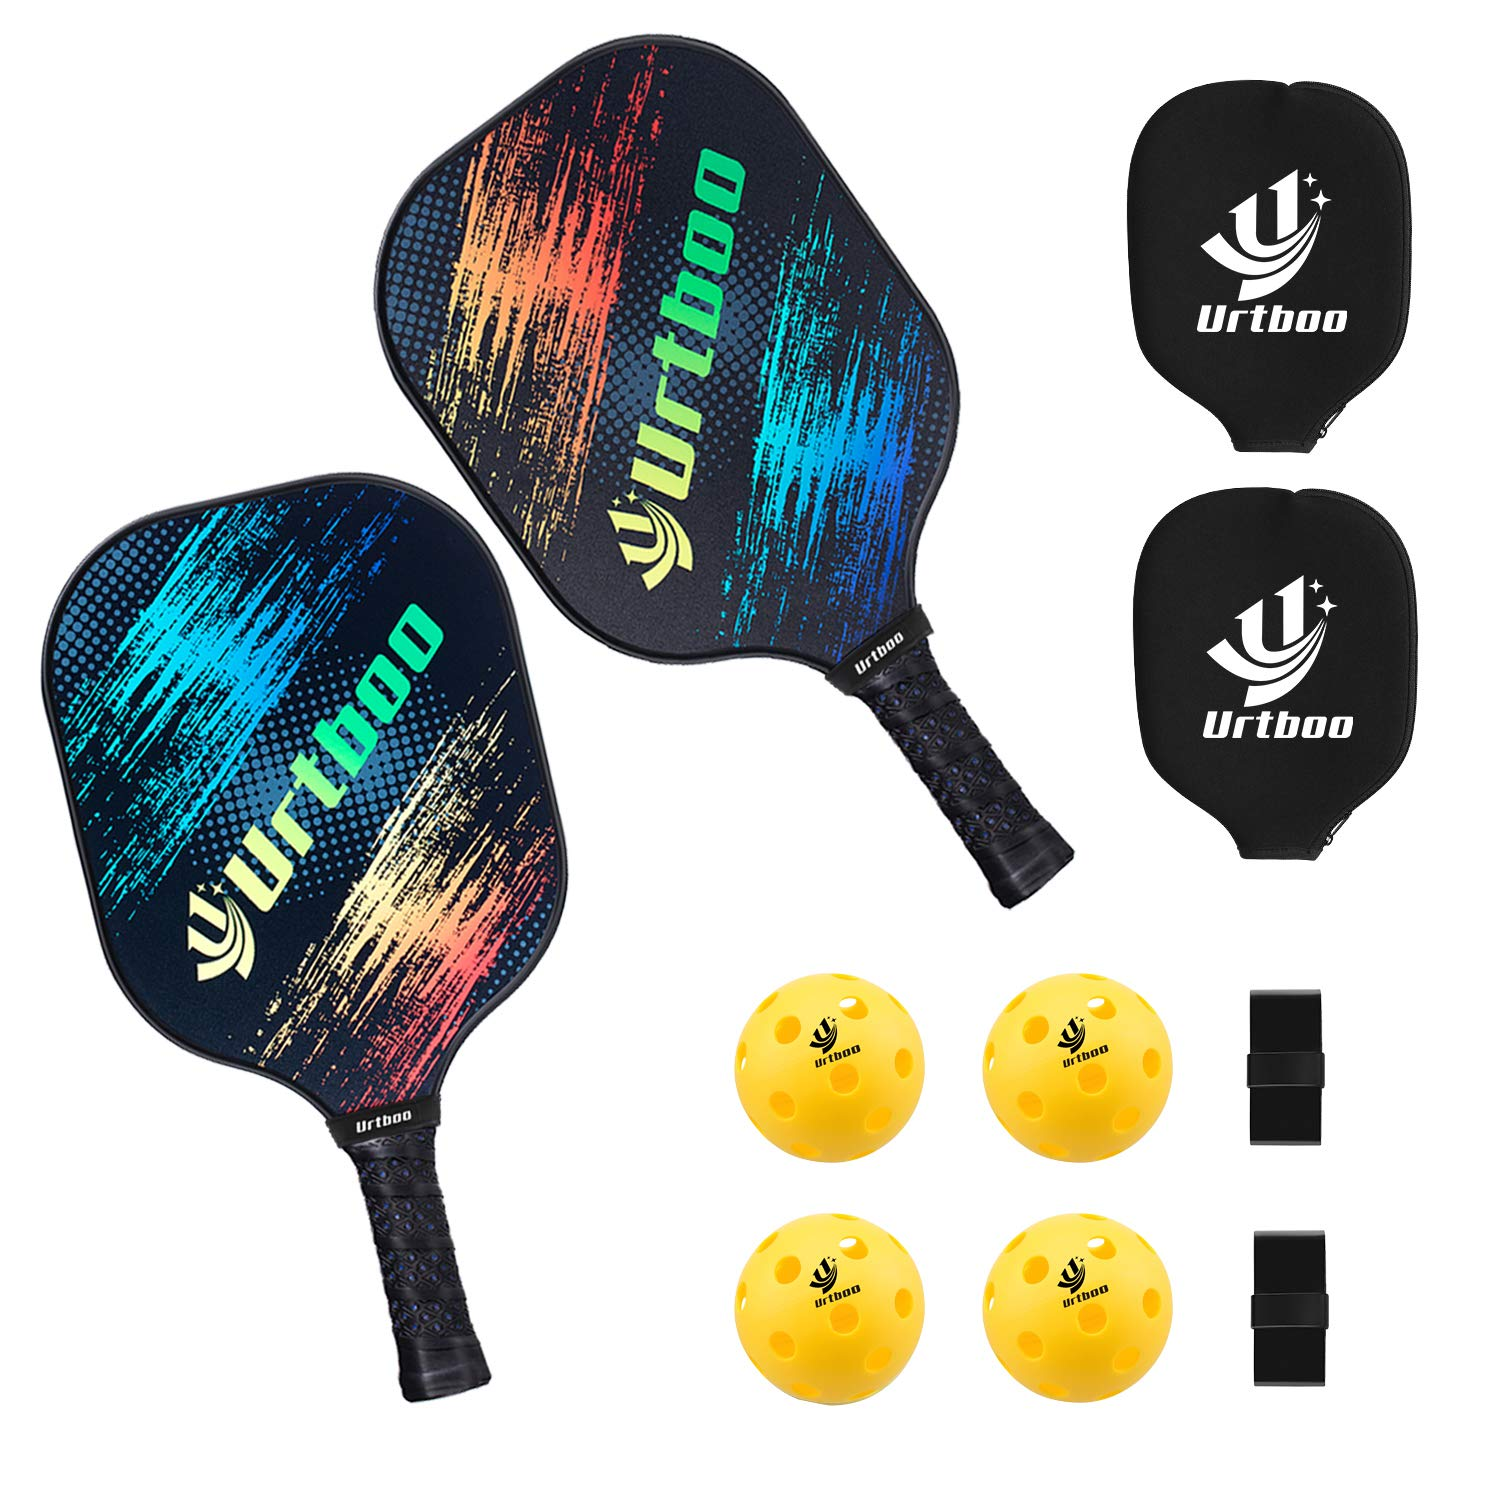 Urtboo Pickleball Paddle Rackets, Graphite Pickleball Sets Graphite Face Honeycomb Composite Core Low Edge Guard Premium Grip Light Weight 8 OZ,Pickleball Racket Good Choice for Beginner&Pro by Urtboo